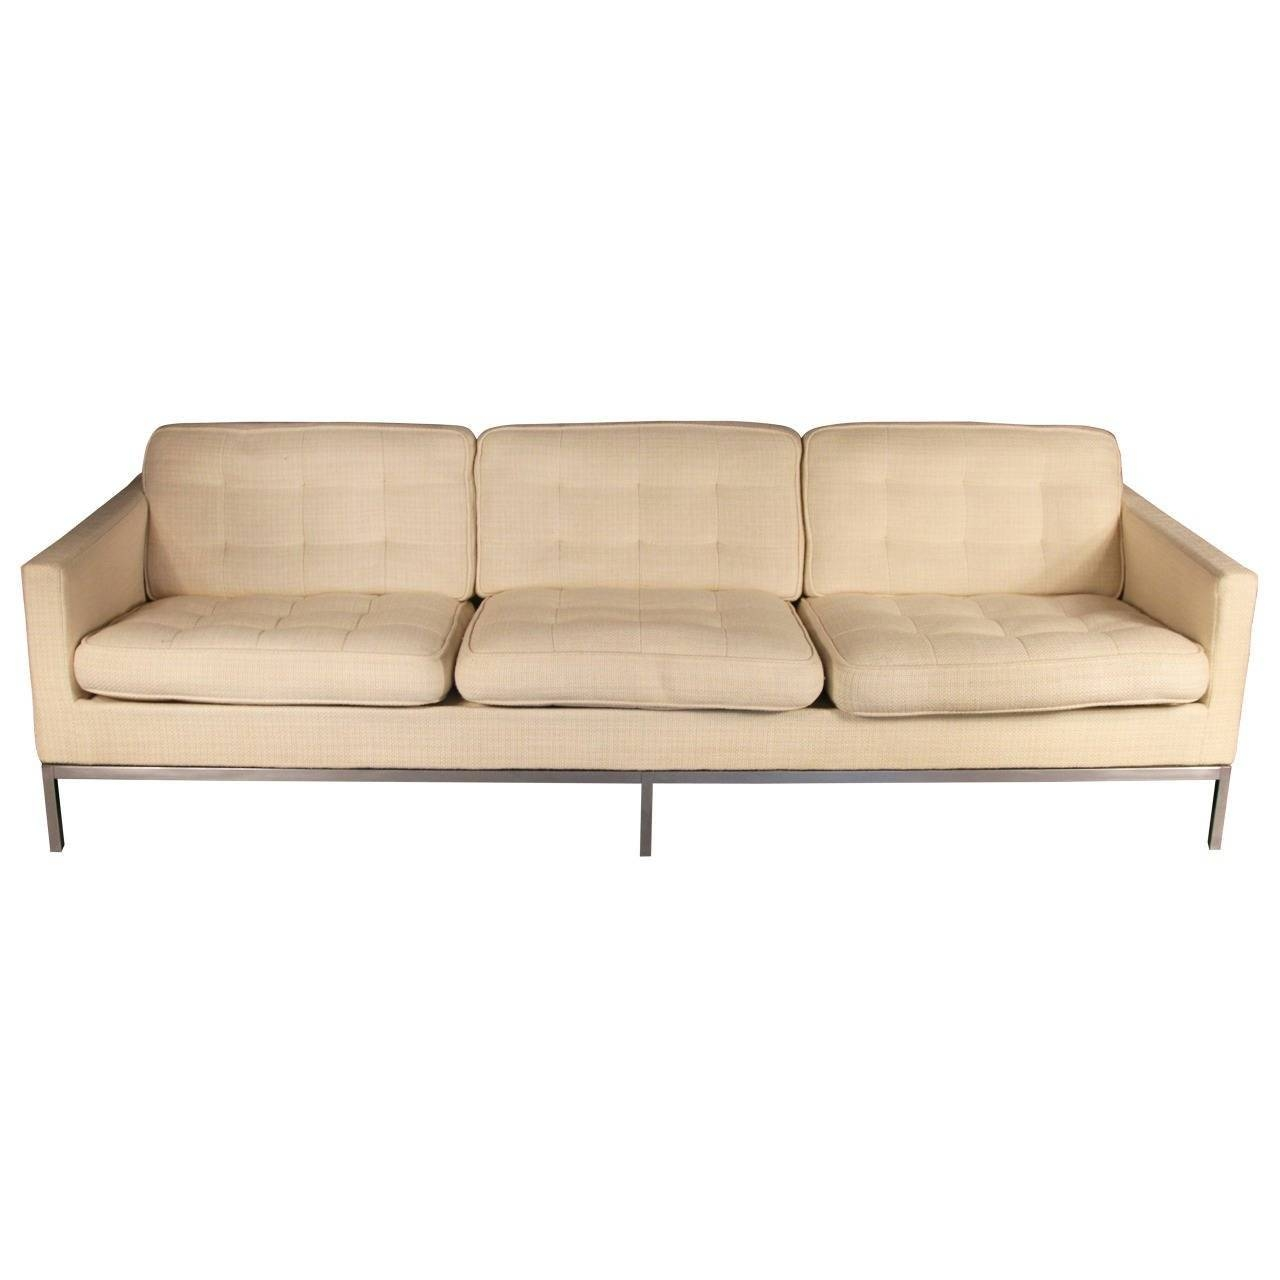 Florence Knoll Three-Seat Sofa On Chrome Frame For Sale At 1Stdibs pertaining to Florence Grand Sofas (Image 19 of 25)